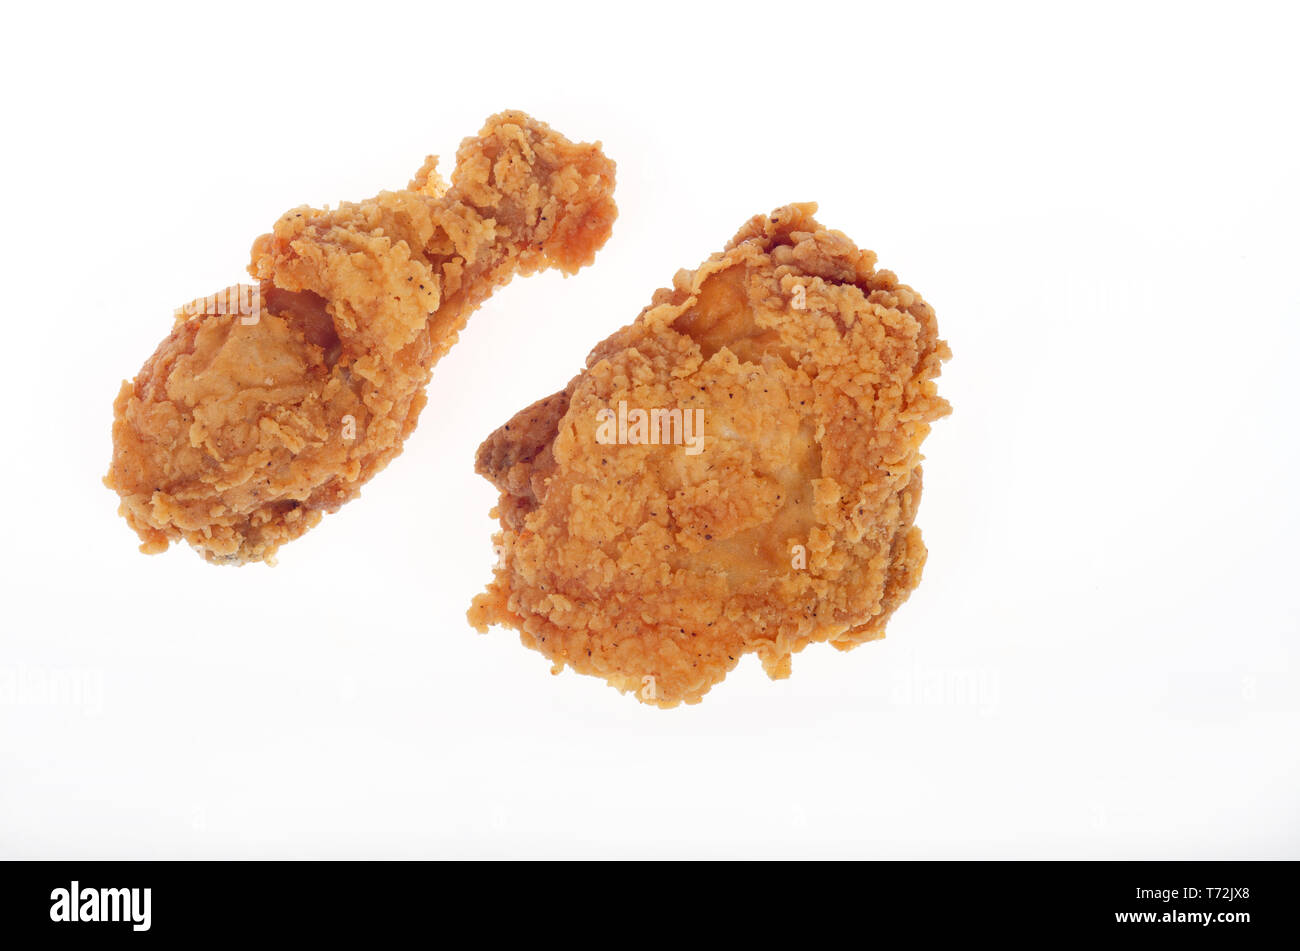 2 pieces crispy deep fried chicken 1 thigh and 1 drumstick - Stock Image